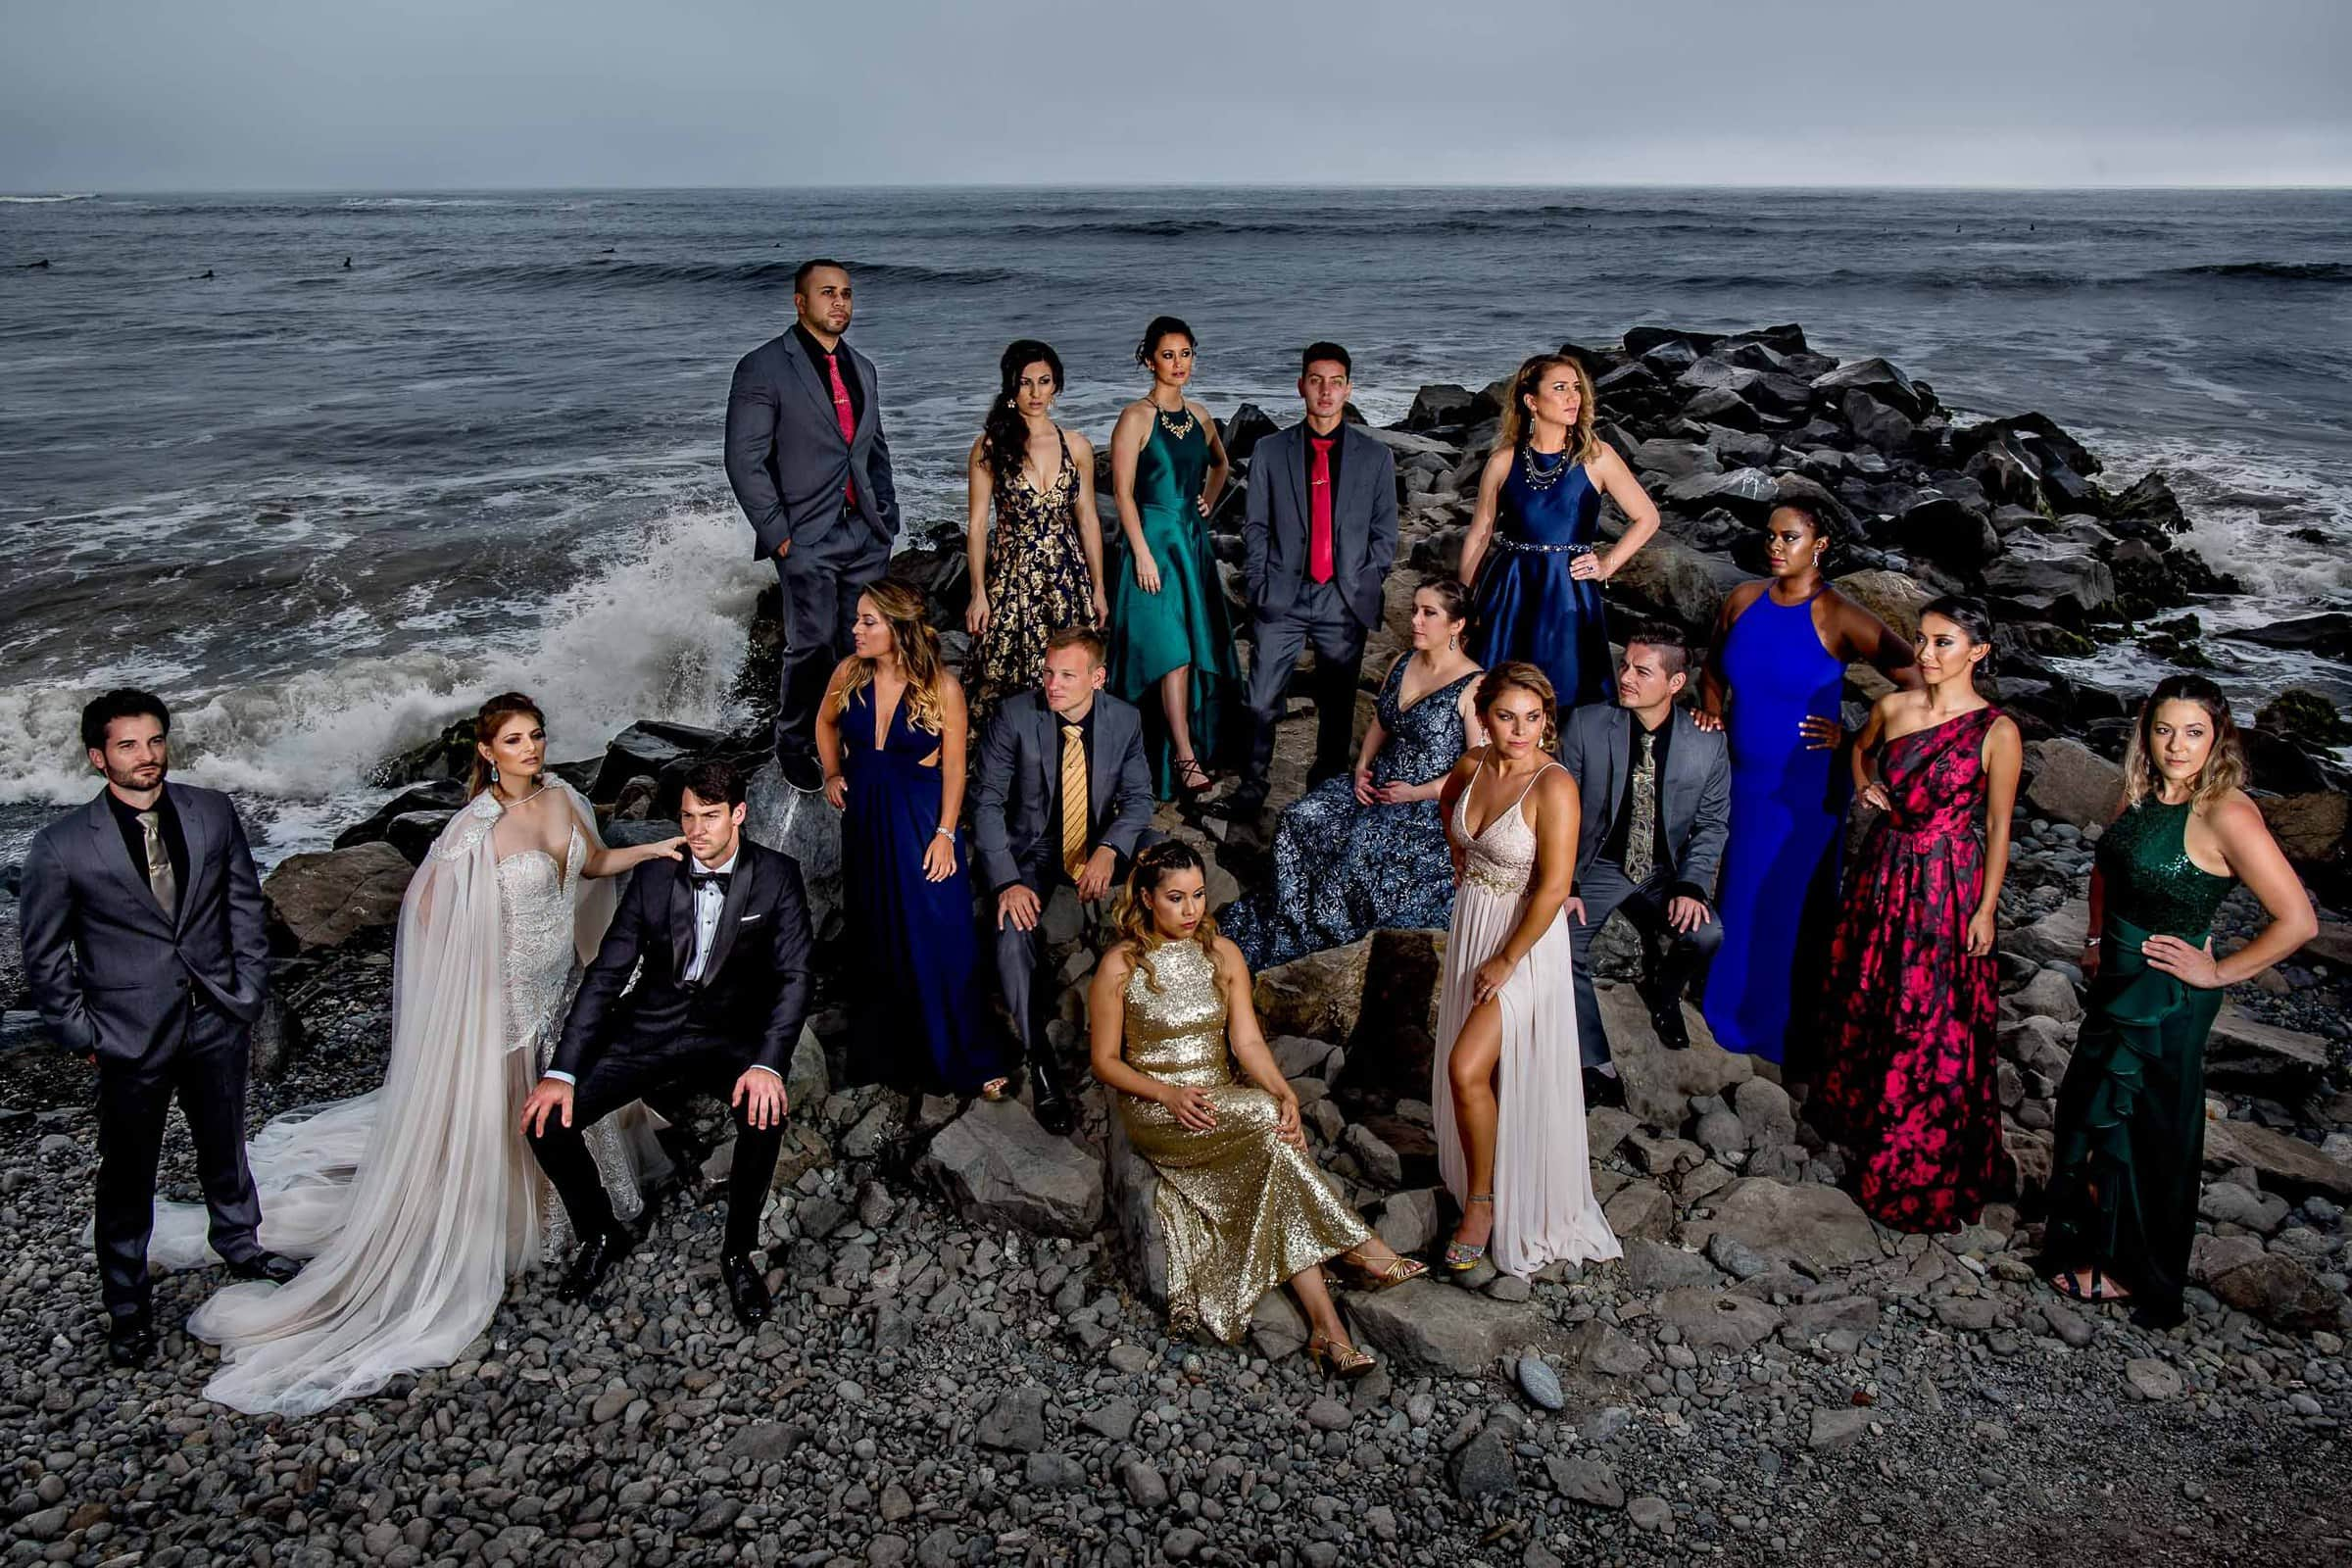 Game of Thrones portrait for an entire bridal party during a Lima Peru wedding